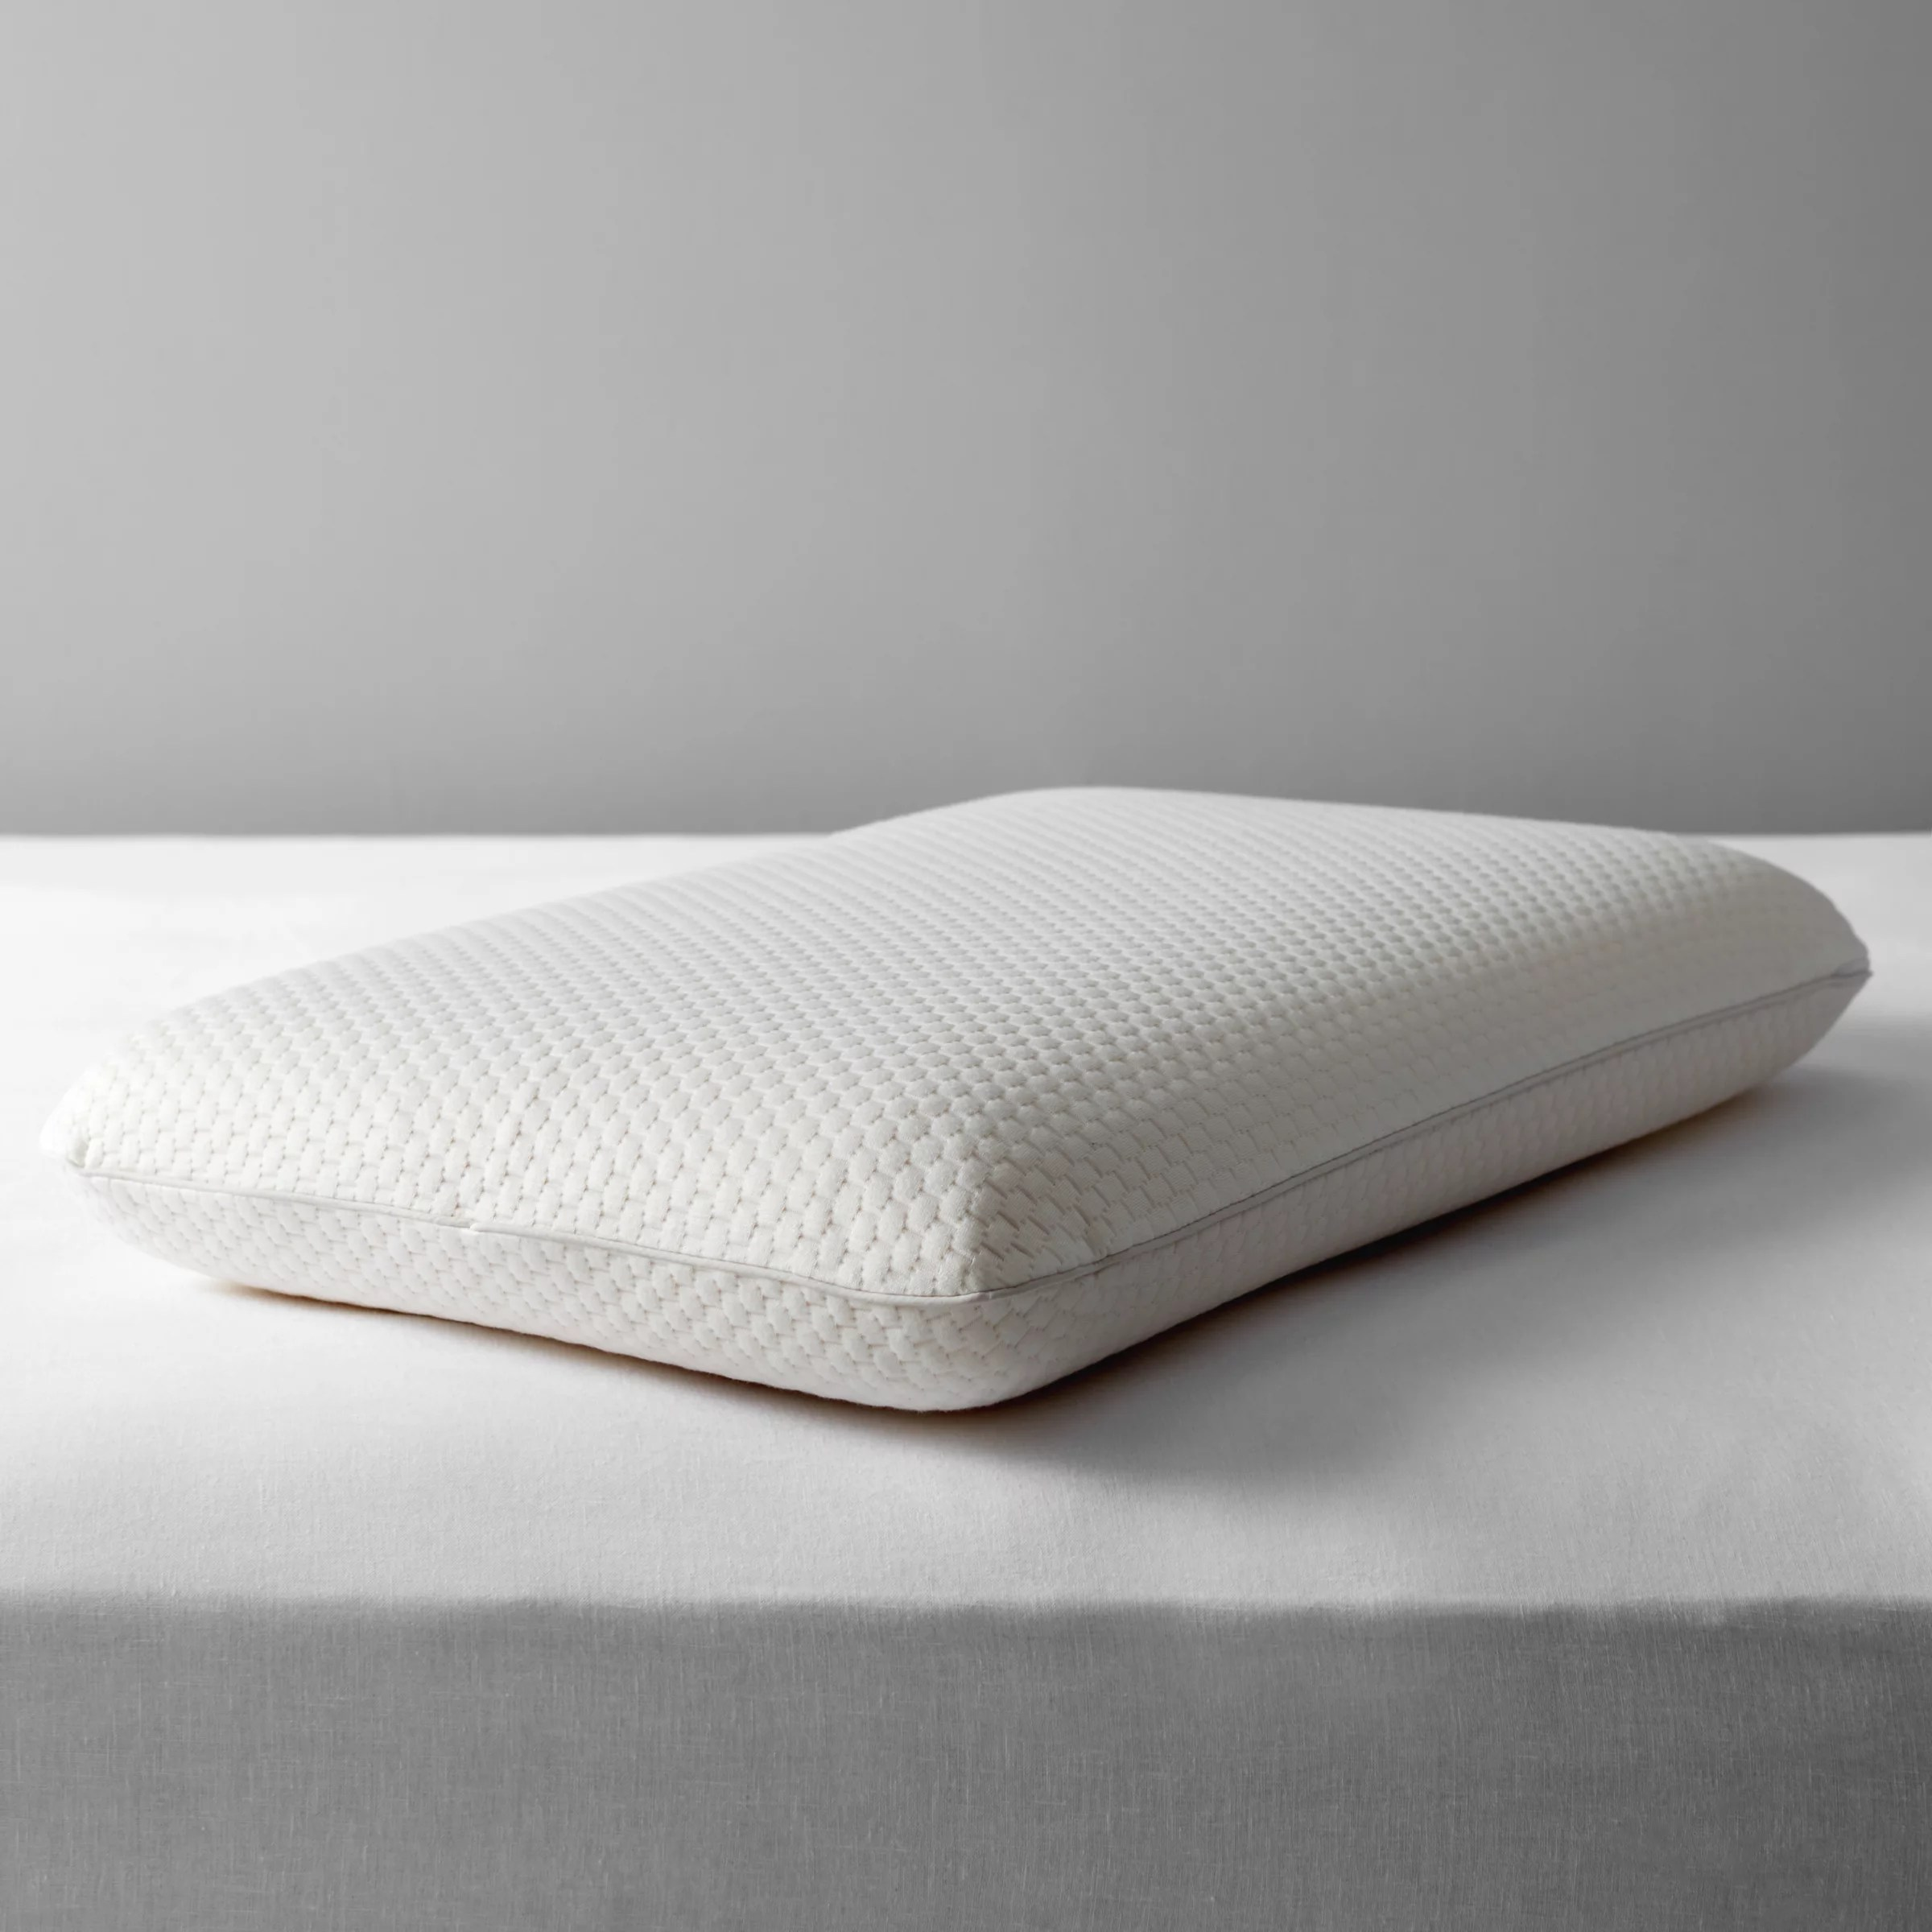 Firm Memory Foam Pillow John Lewis Partners Specialist Synthetic Memory Foam Standard Support Pillow Medium Firm